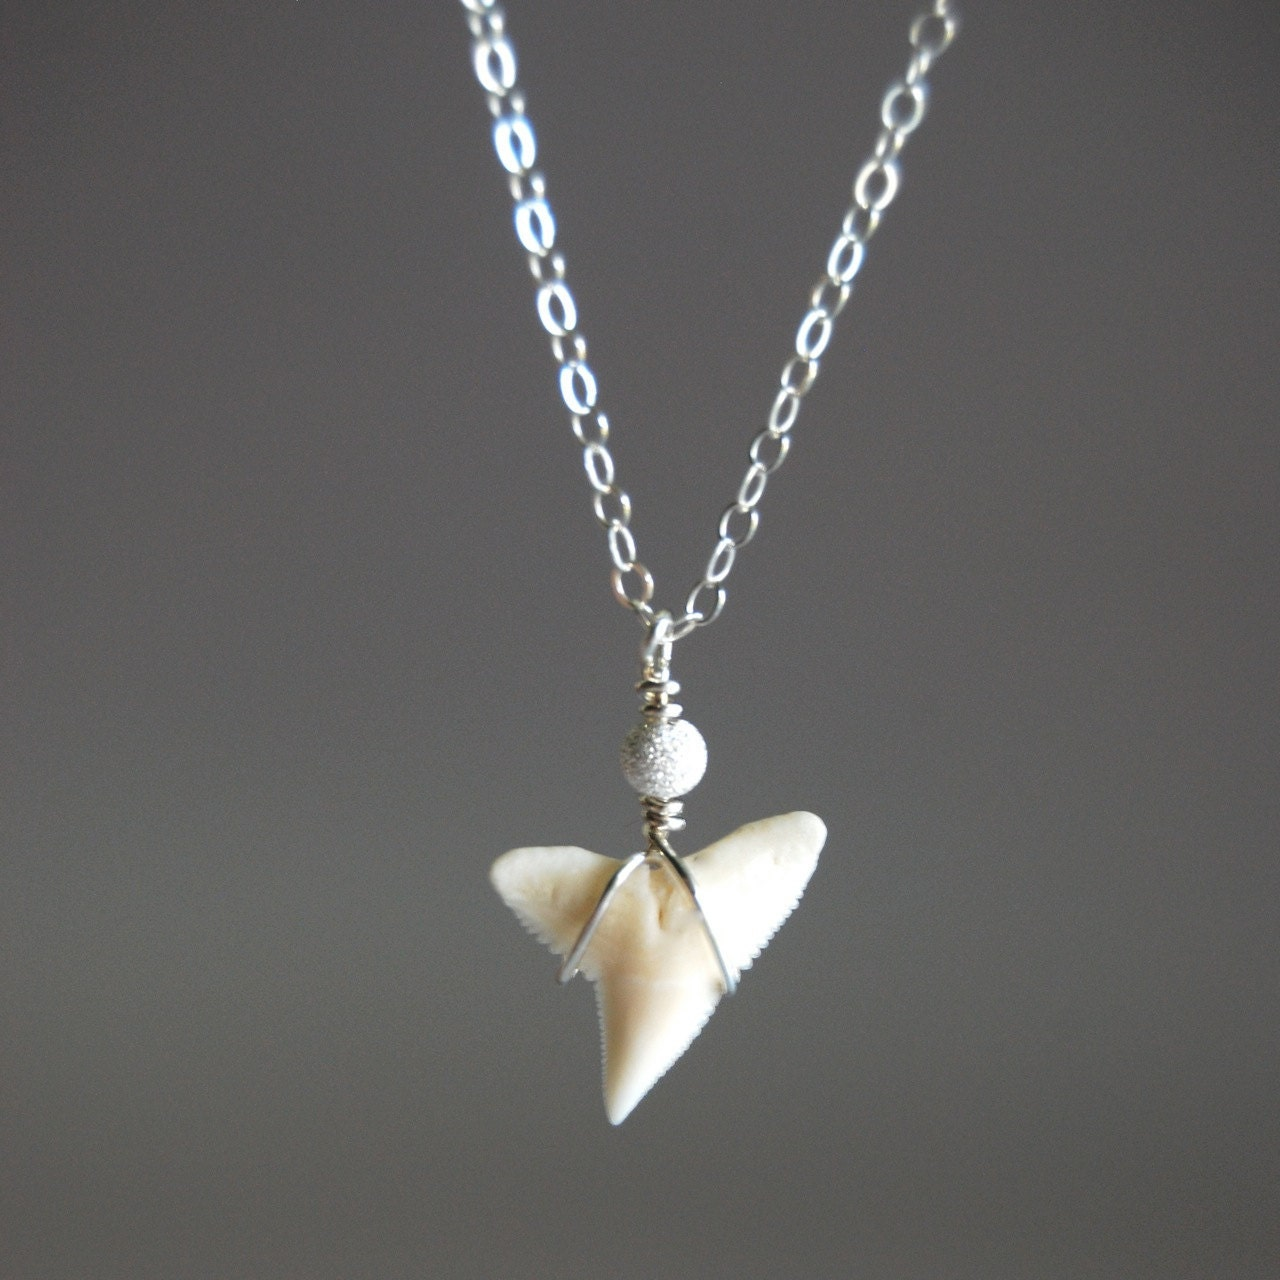 mano jr necklace tiny sterling silver shark tooth necklace